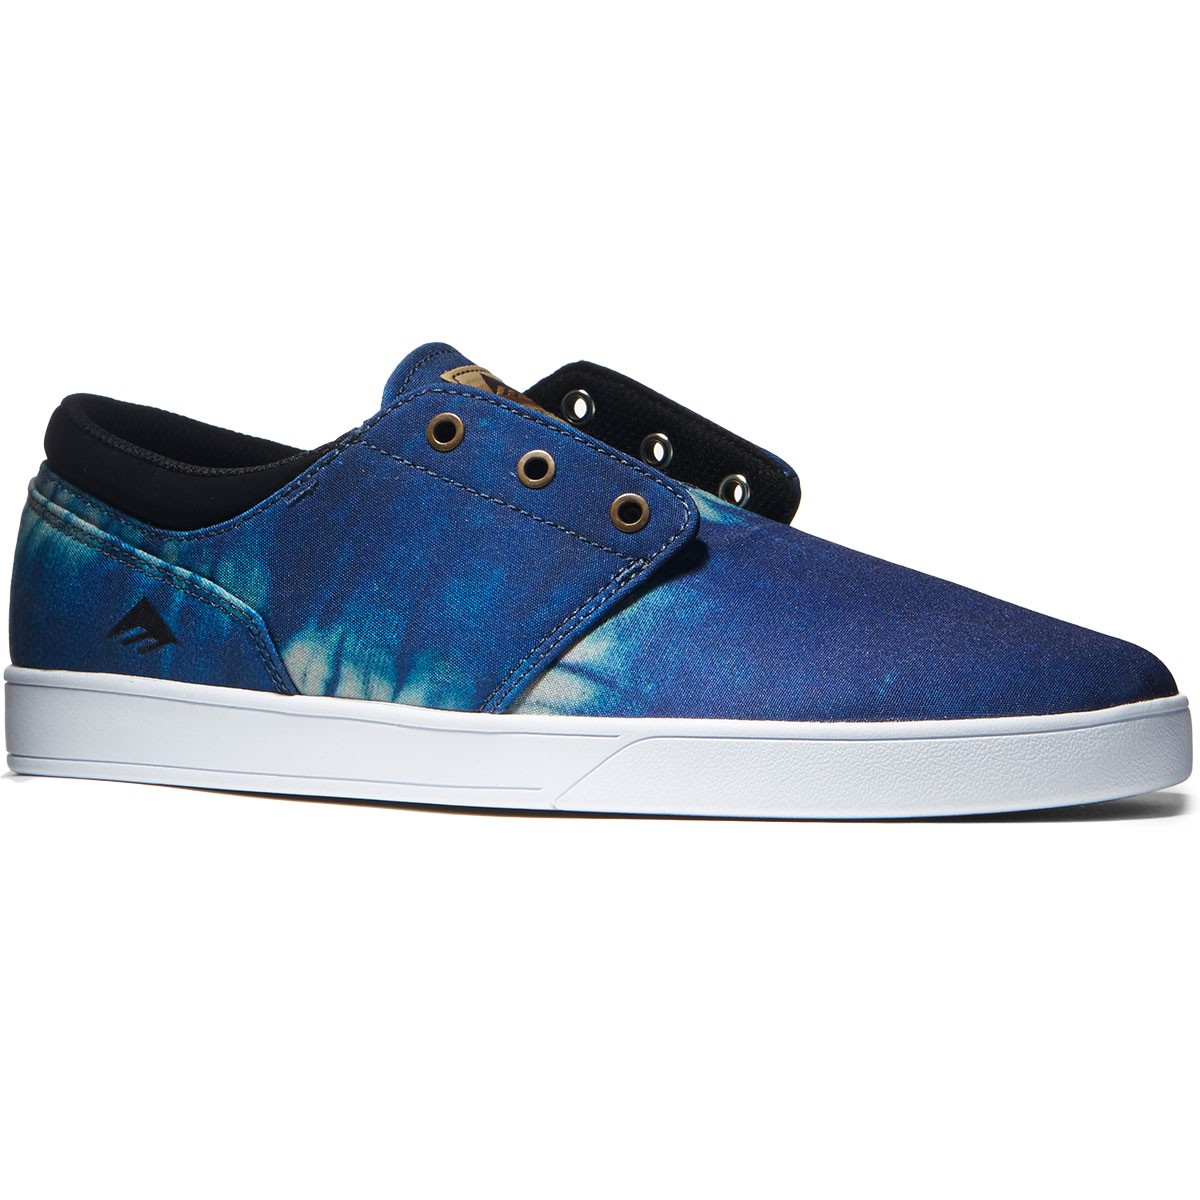 Emerica The Figueroa Shoes - Assorted Dark - 8.0